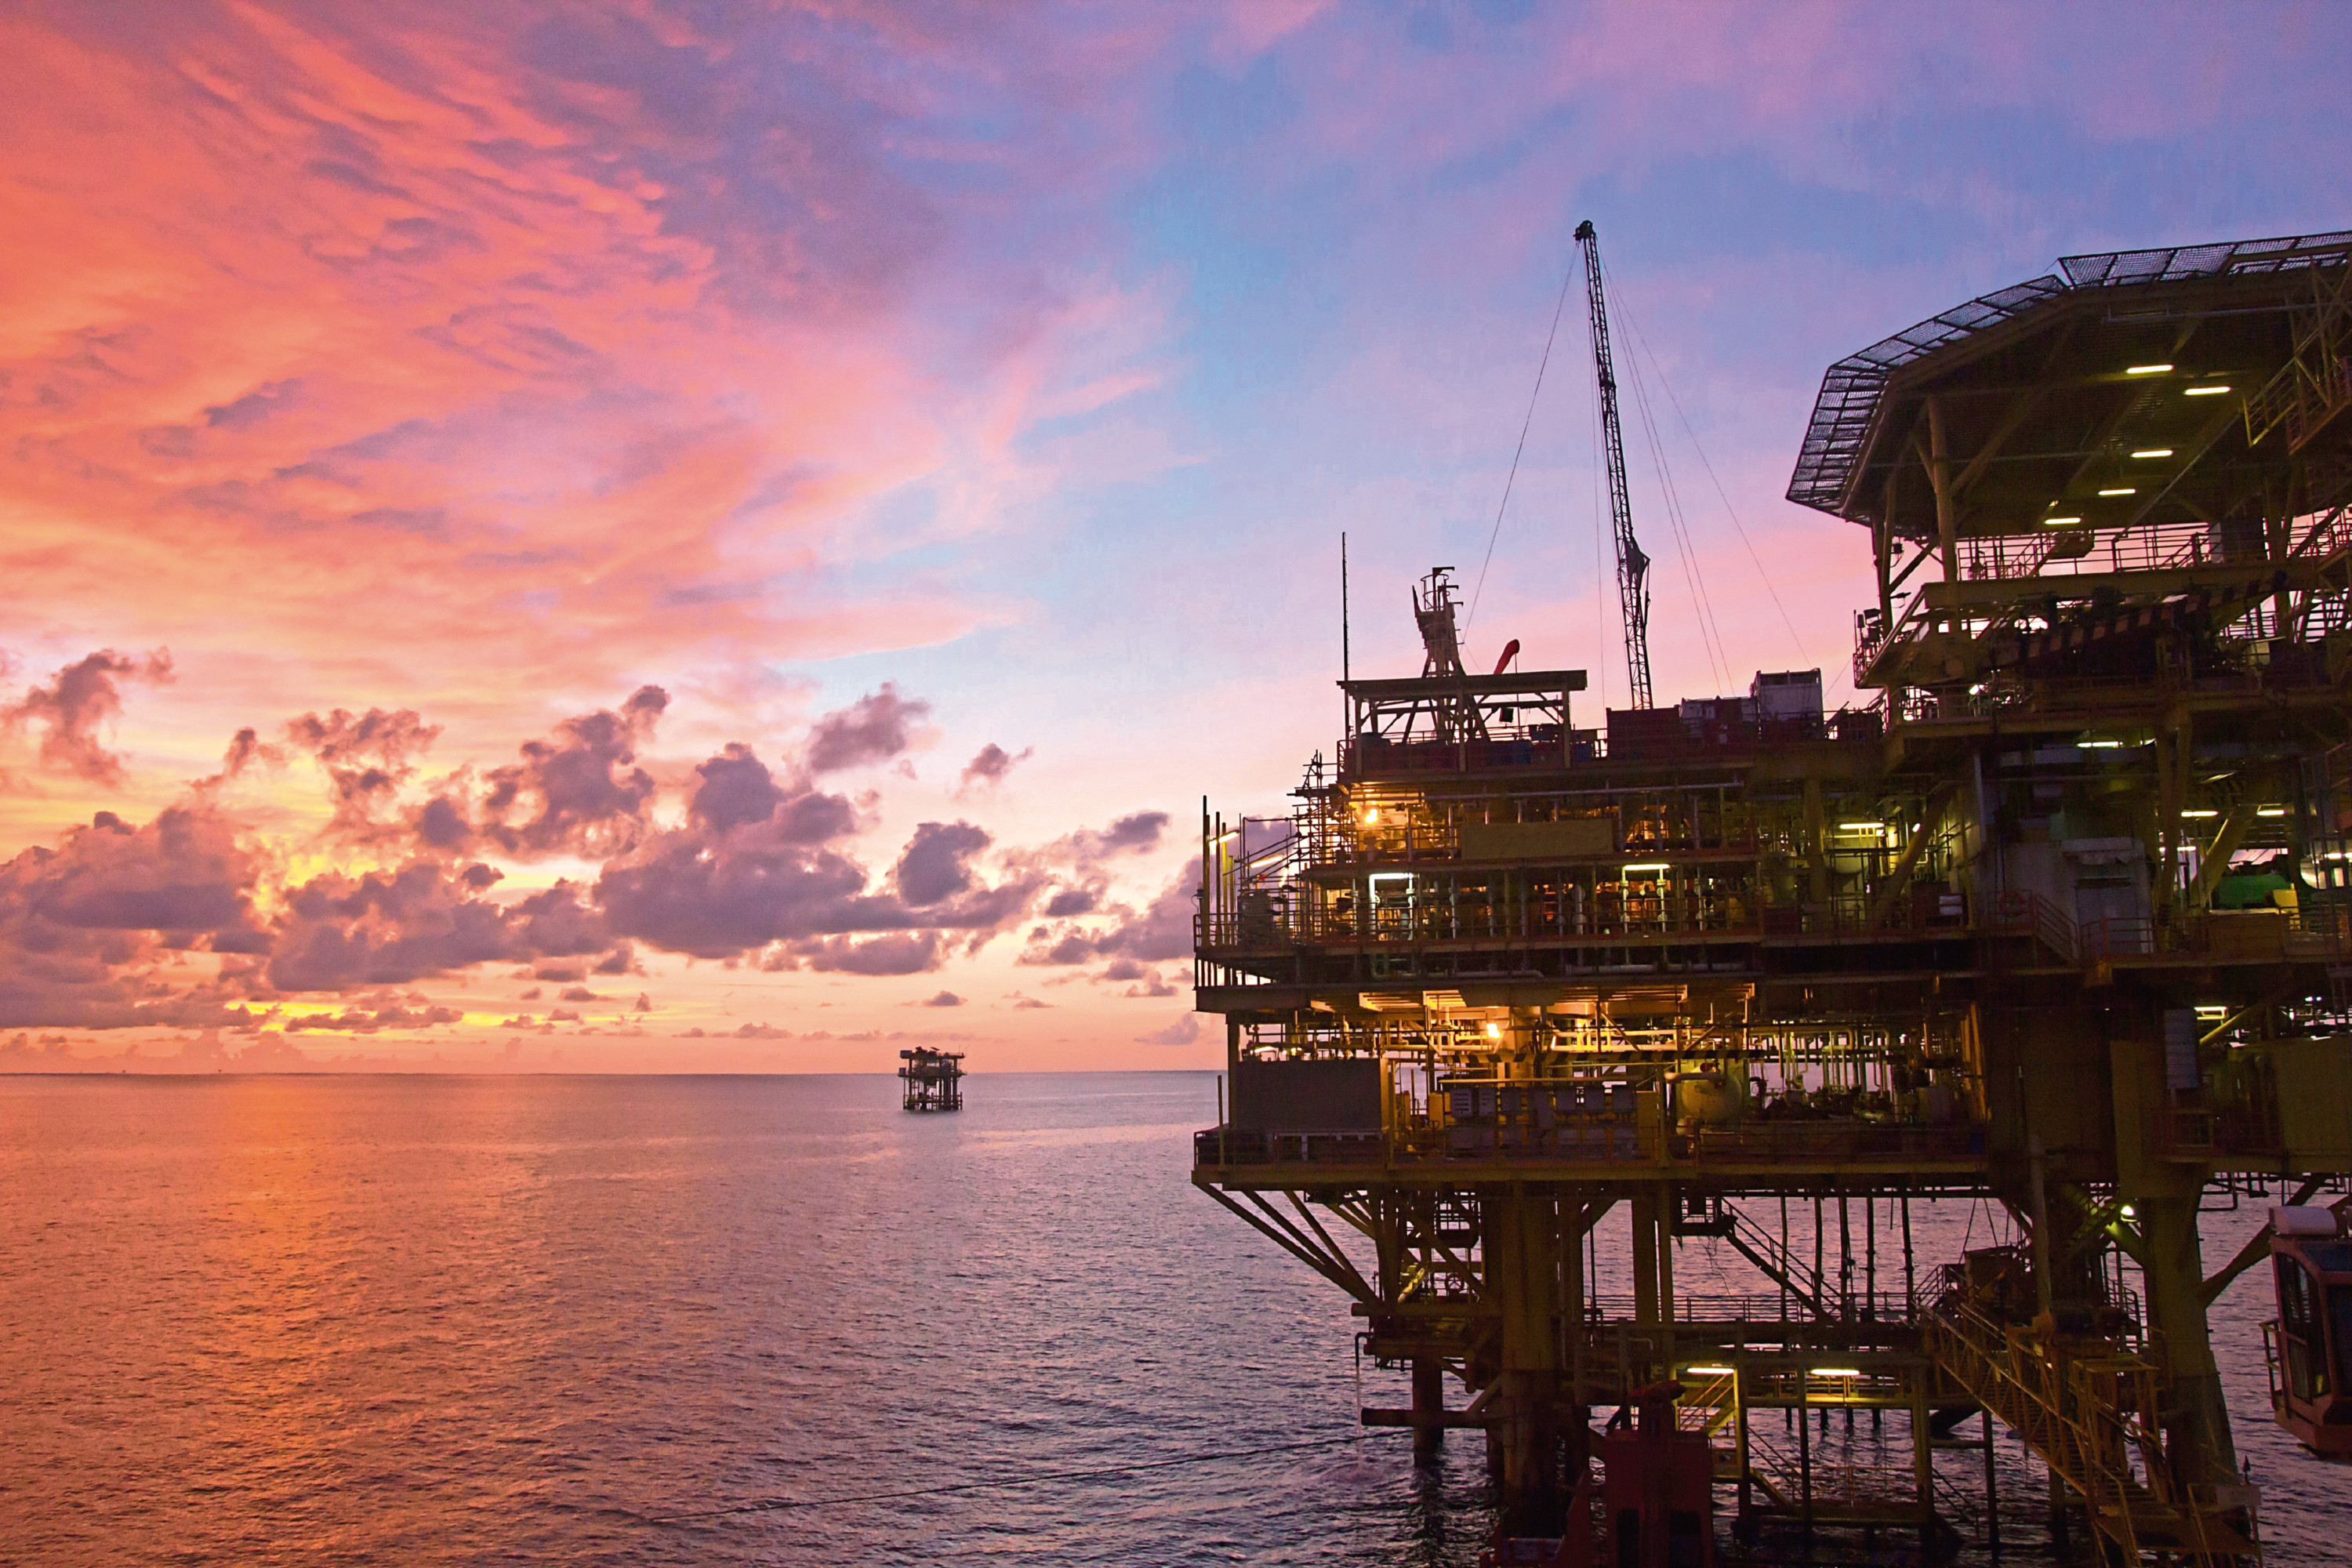 The report predicted that oil and gas companies will spend £15.3 billion on decommissioning over the next 10 years